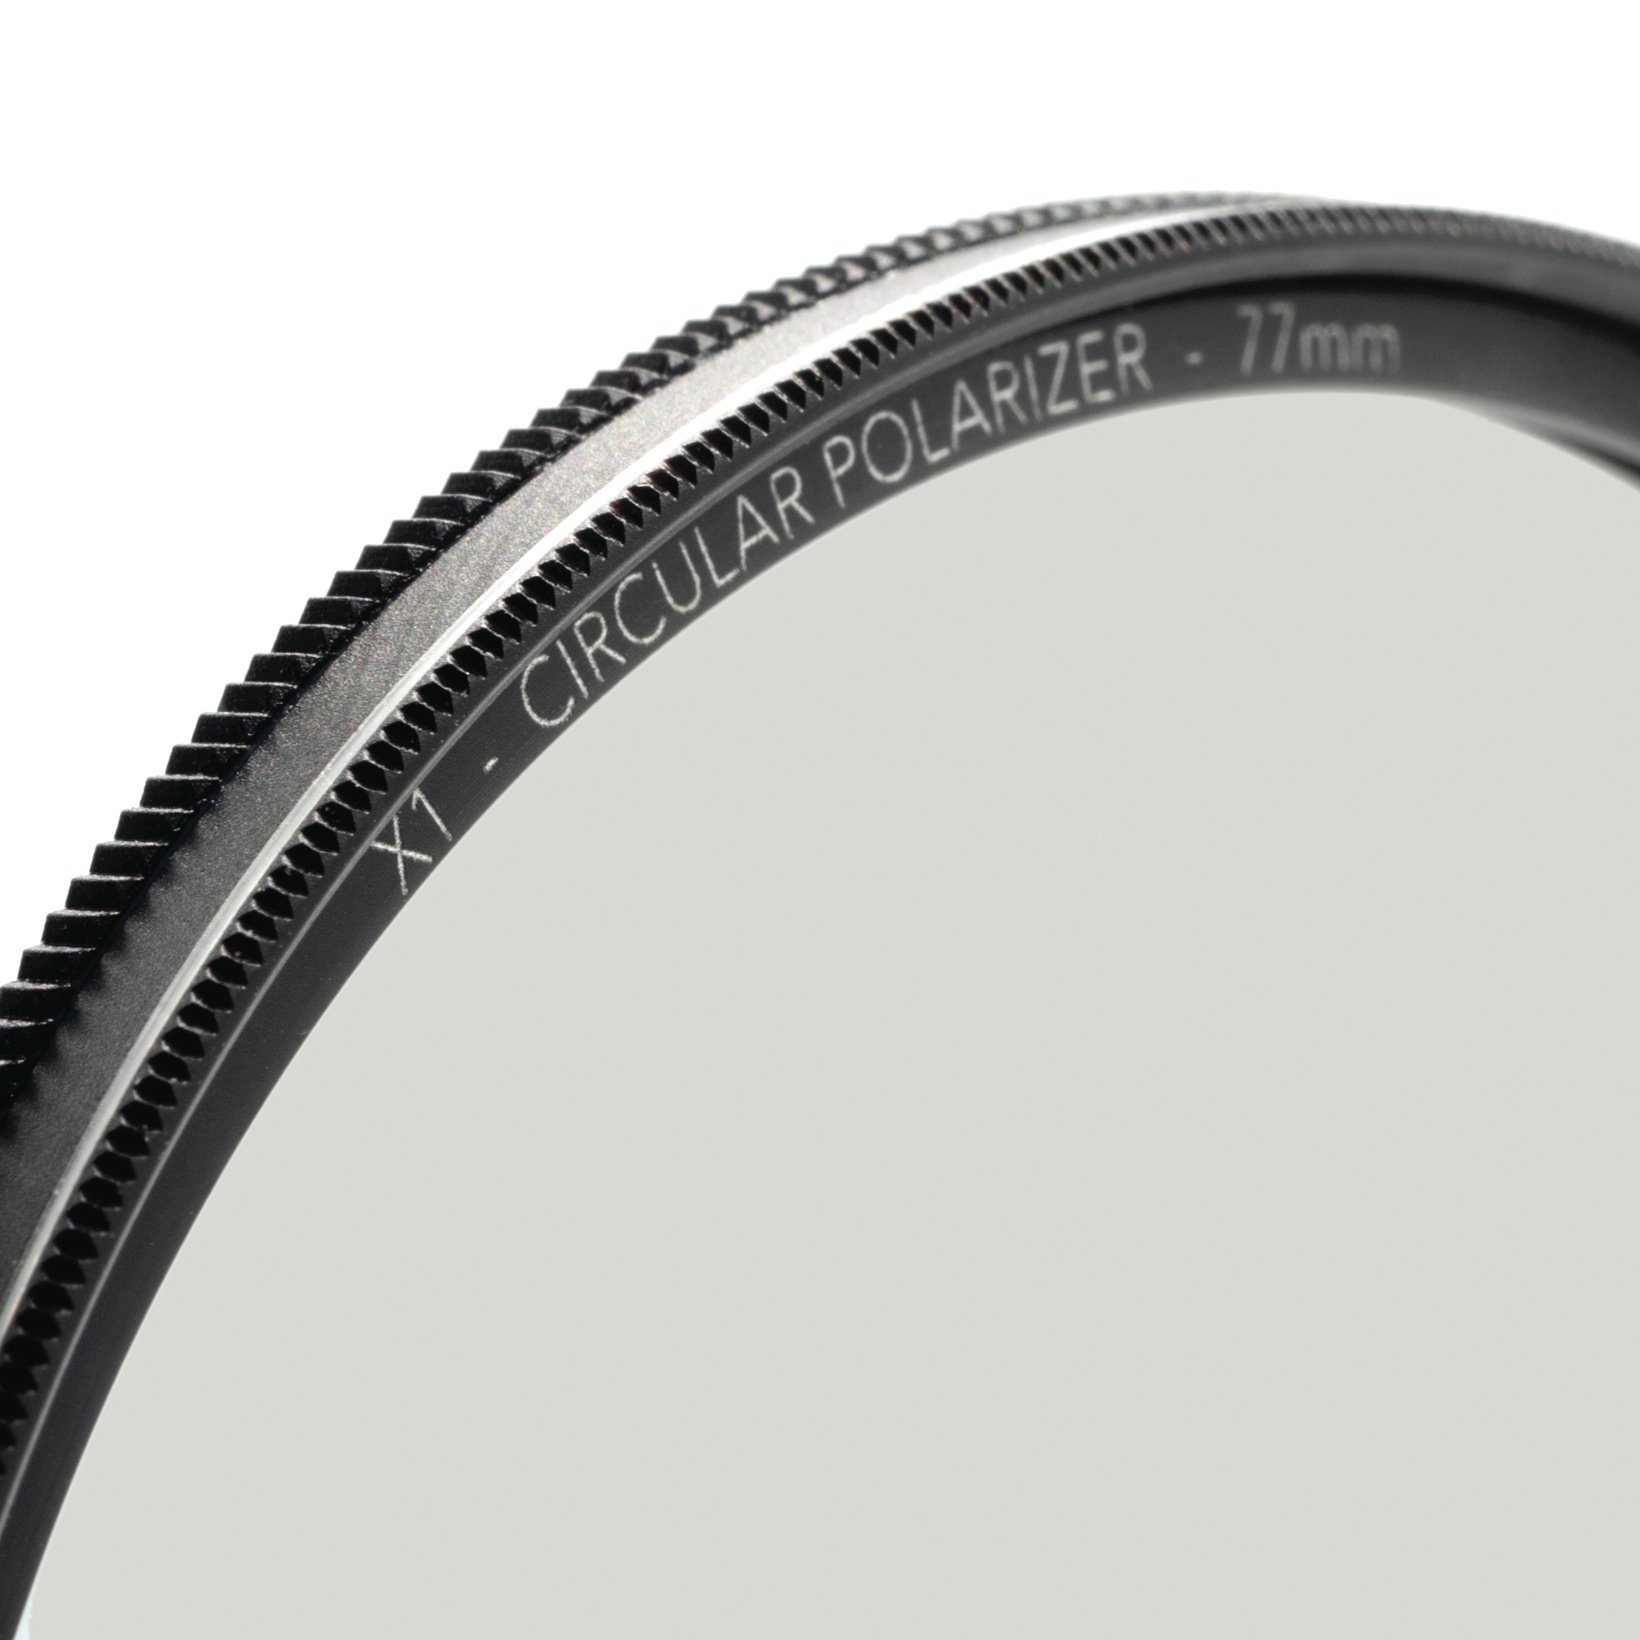 77mm X1 Circular Polarizer, MRC8, Ultra-Slim, Weather Sealed + Free Mircofiber Lens Cloth by Breakthrough Photography